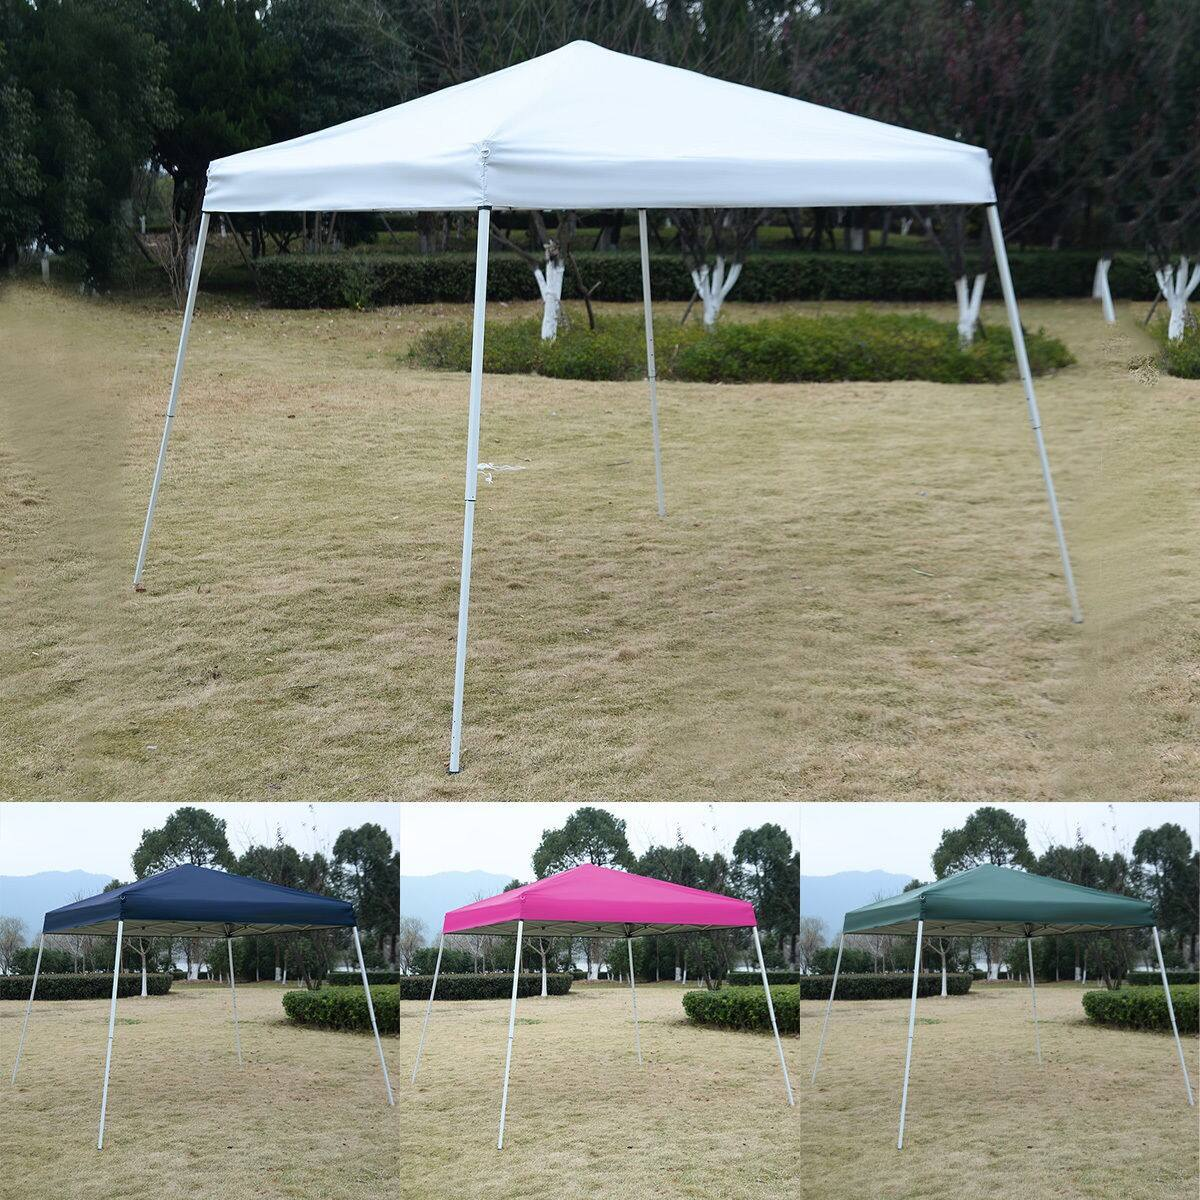 Costway Goplus 10'x10' Canopy w/ Carrying Bag $30.95 (BL/GR) + Free Shipping